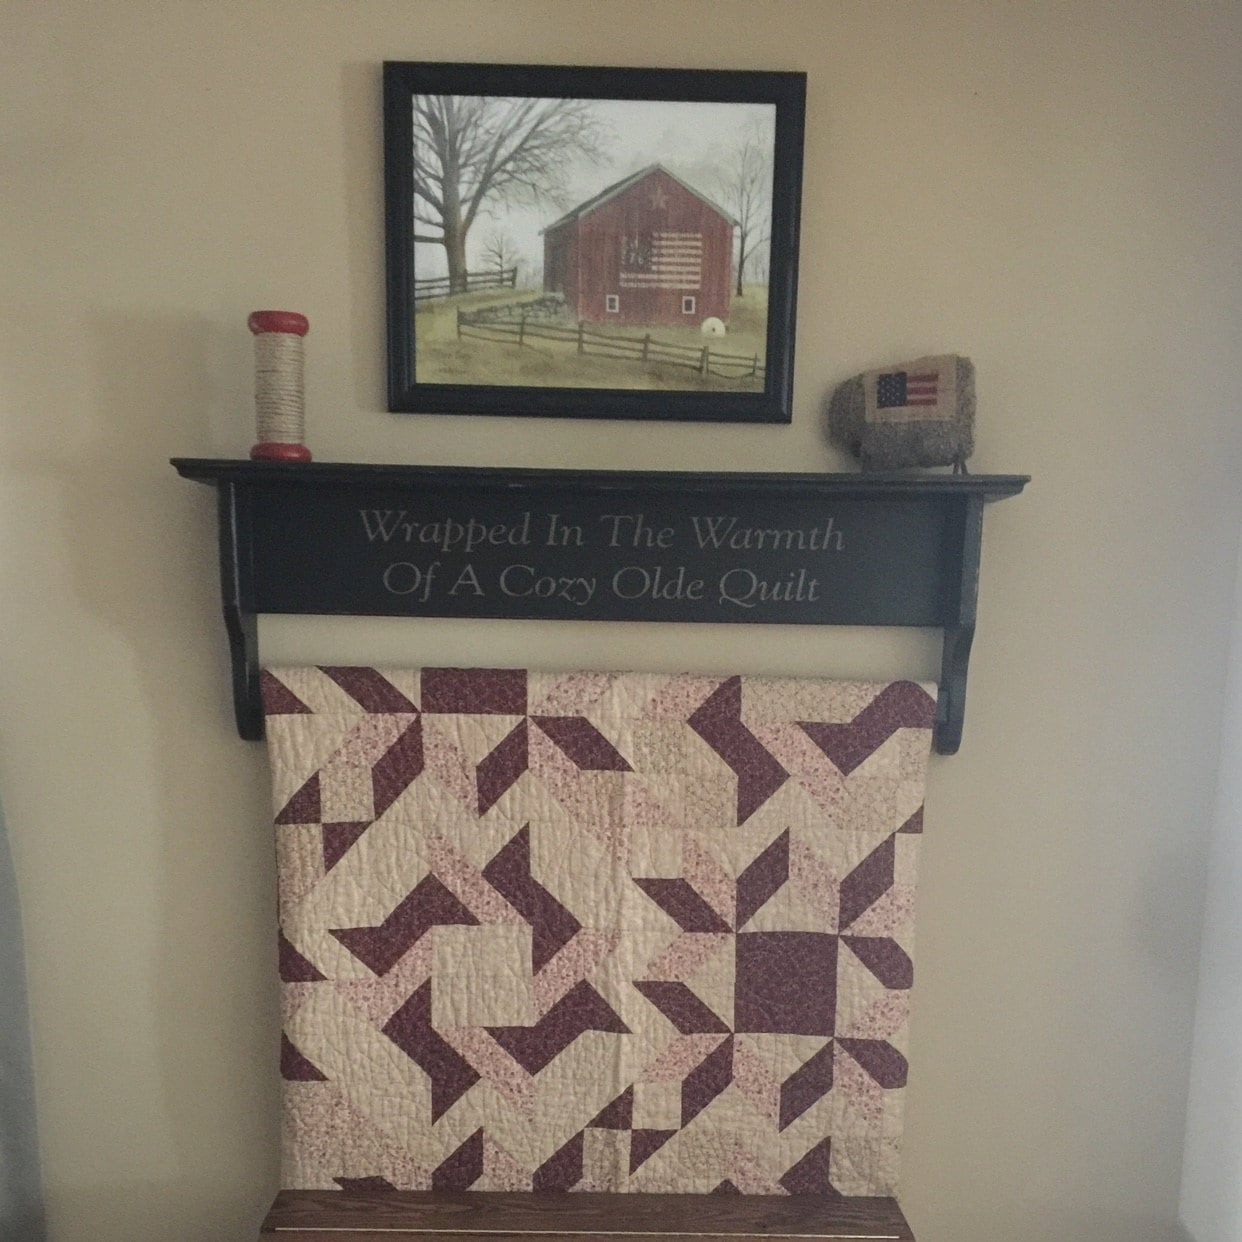 annemiletich added a photo of their purchase